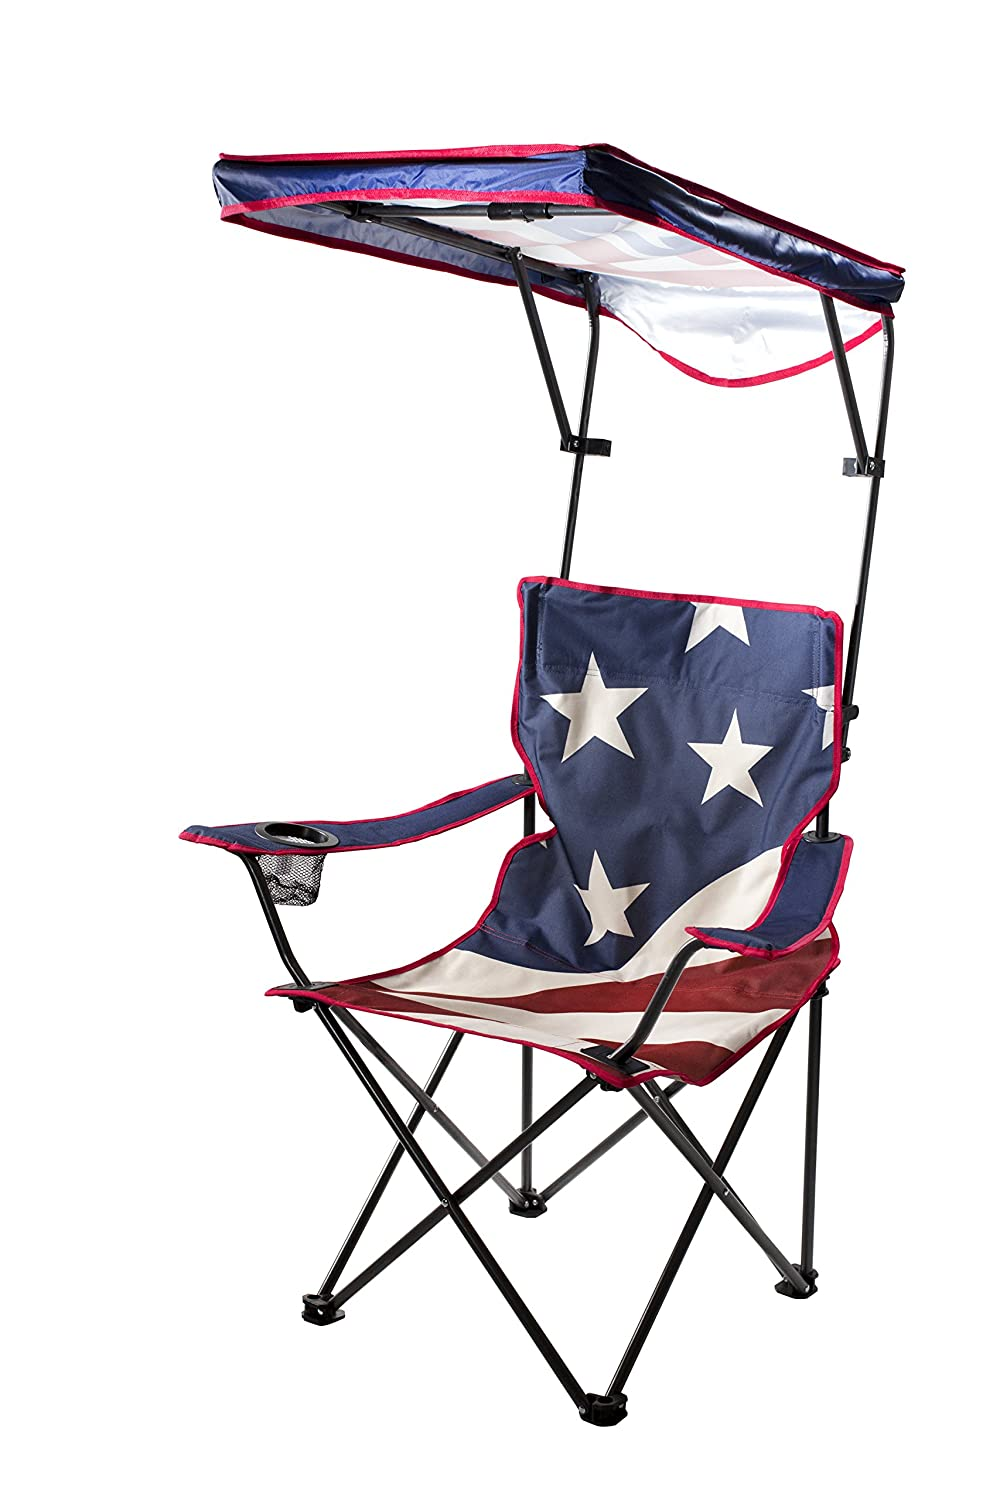 Amazon.com  Quik Shade Adjustable Canopy Folding C& Chair - American Flag Pattern  Sports u0026 Outdoors  sc 1 st  Amazon.com & Amazon.com : Quik Shade Adjustable Canopy Folding Camp Chair ...